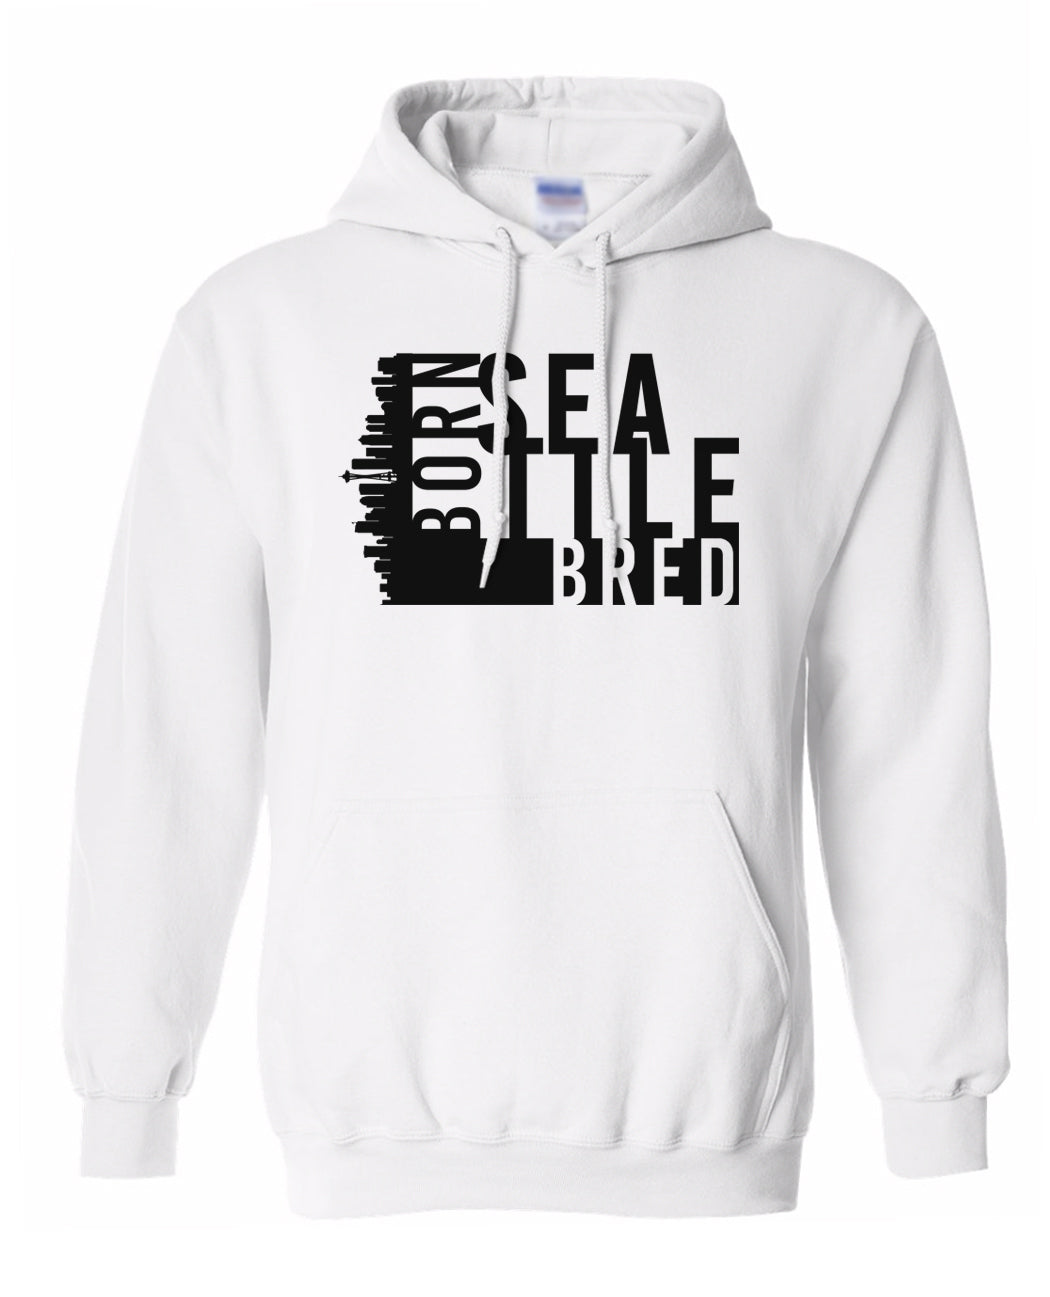 white Seattle born and bred hoodie